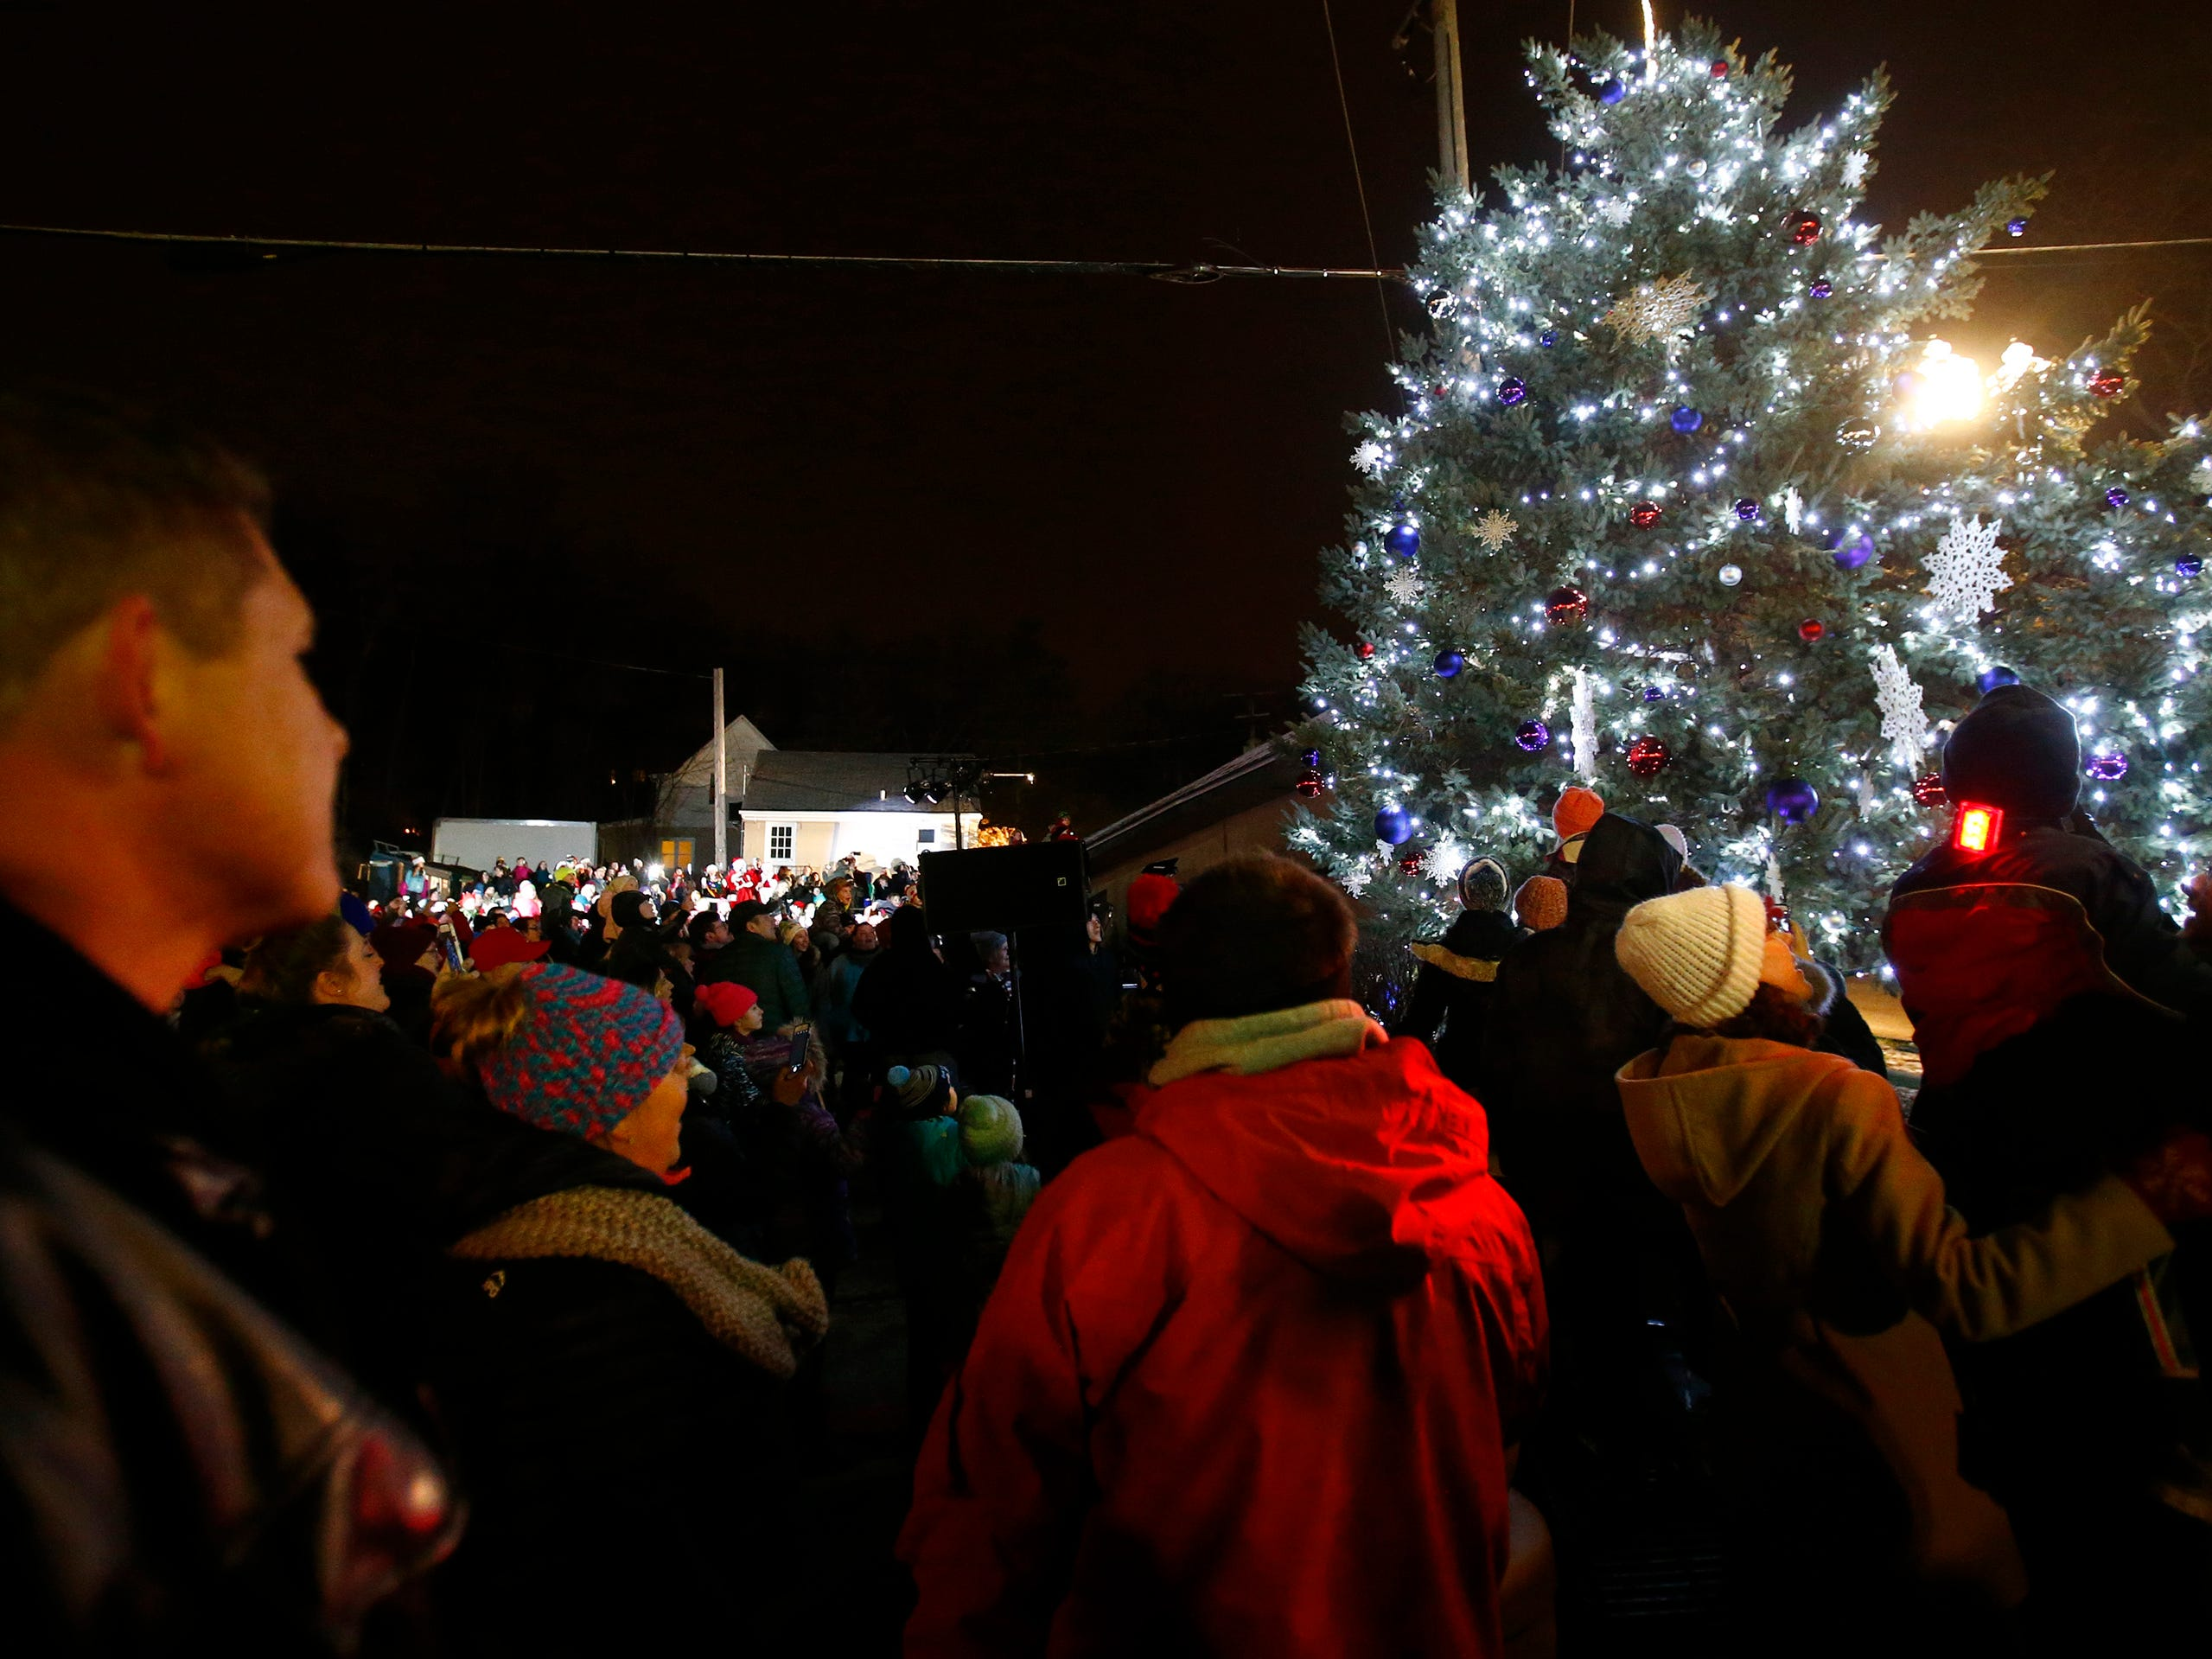 Following choral songs and a countdown by the crowd, the Village's Christmas tree is illuminated during Hartland Lights on Nov. 30.